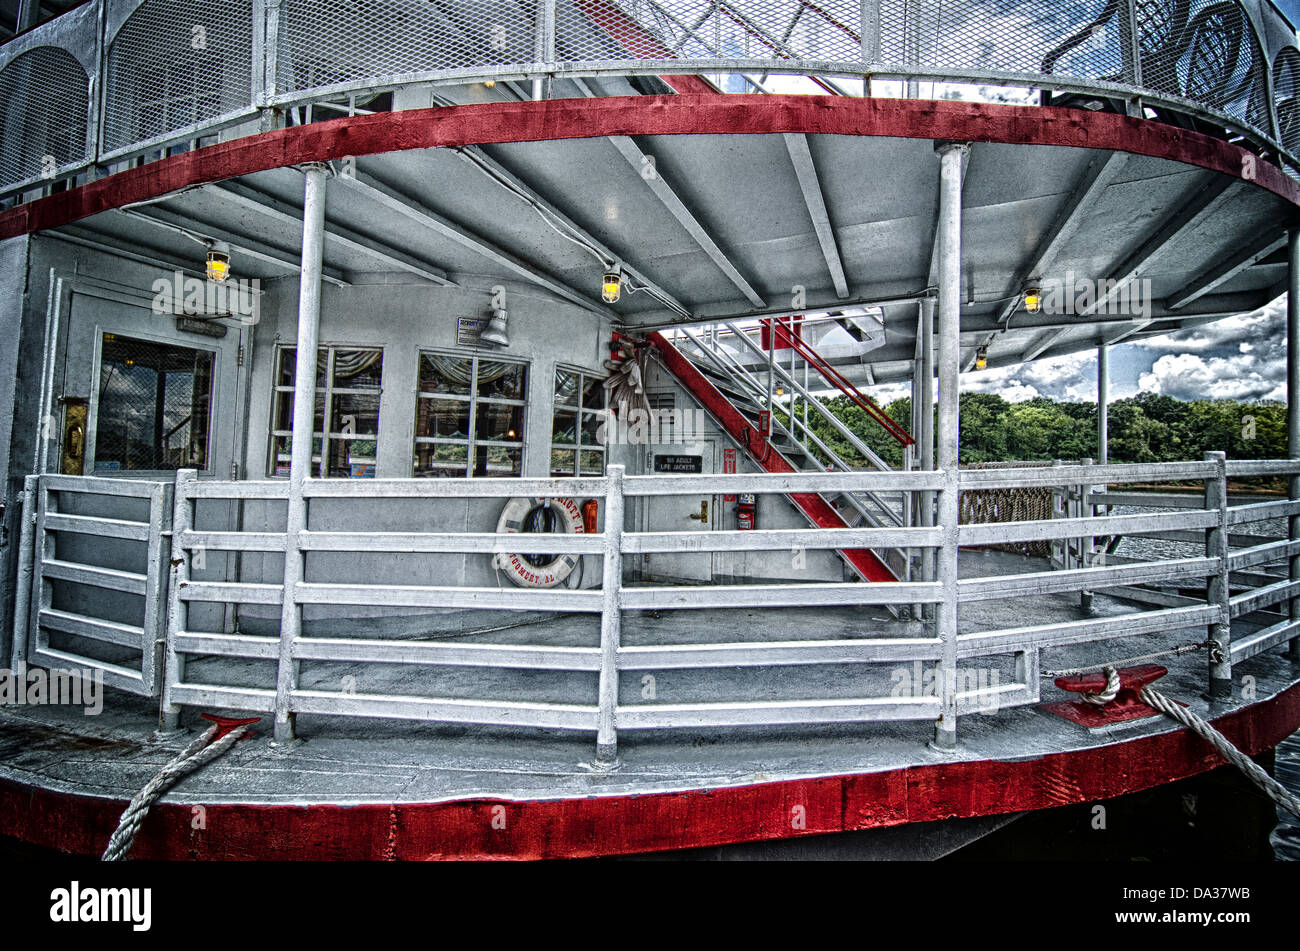 This is a grungy closeup image of a riverboat deck. - Stock Image